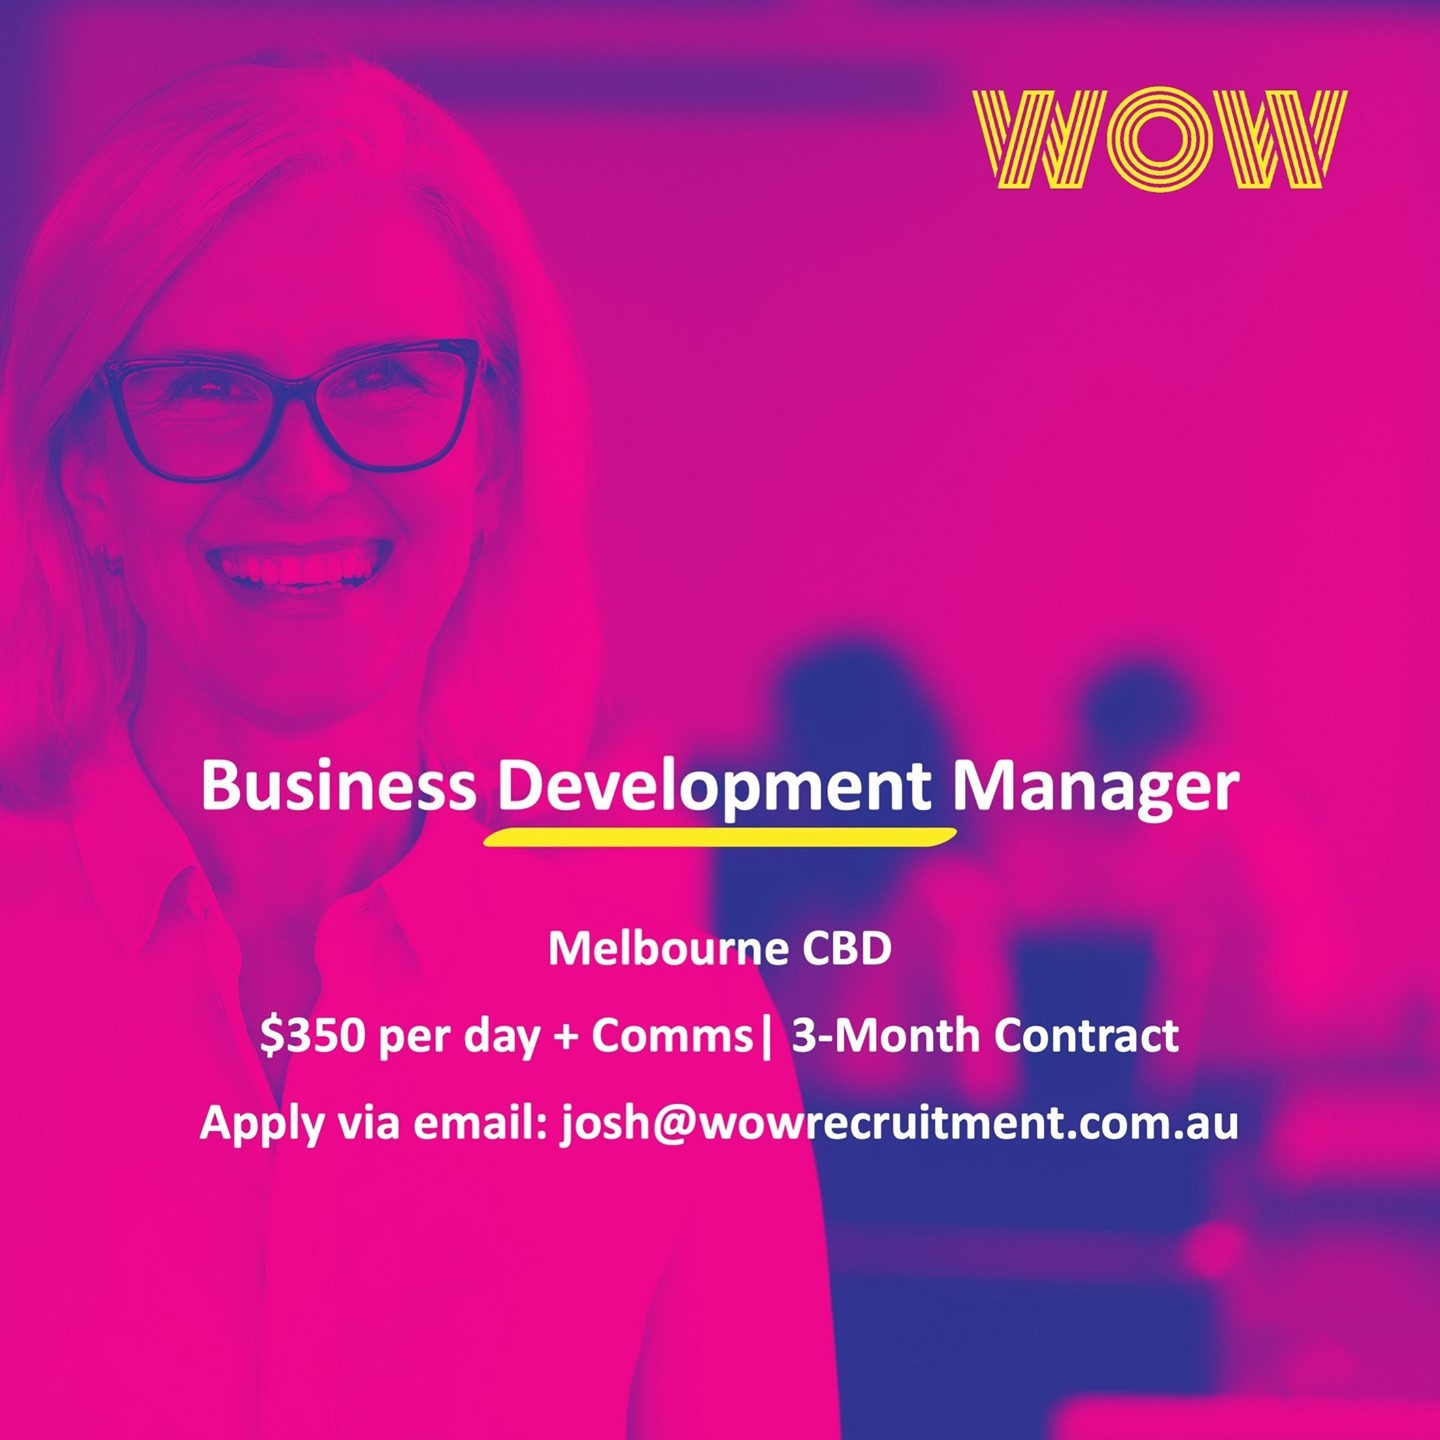 WOW Recruitment are looking for an experienced BDM to join one of our Digital Marketing clients in Melbourne CBD for a 3 month contract, with the possibility of extension. If you'd like to learn more, please reach out to our Sales and Marketing Recruitment Specialist, Josh via email at josh@54.66.210.215 👥  ⠀⠀#Sales #Recruitment #BDM #Marketing #DoWhatYouLove #WorkHappy